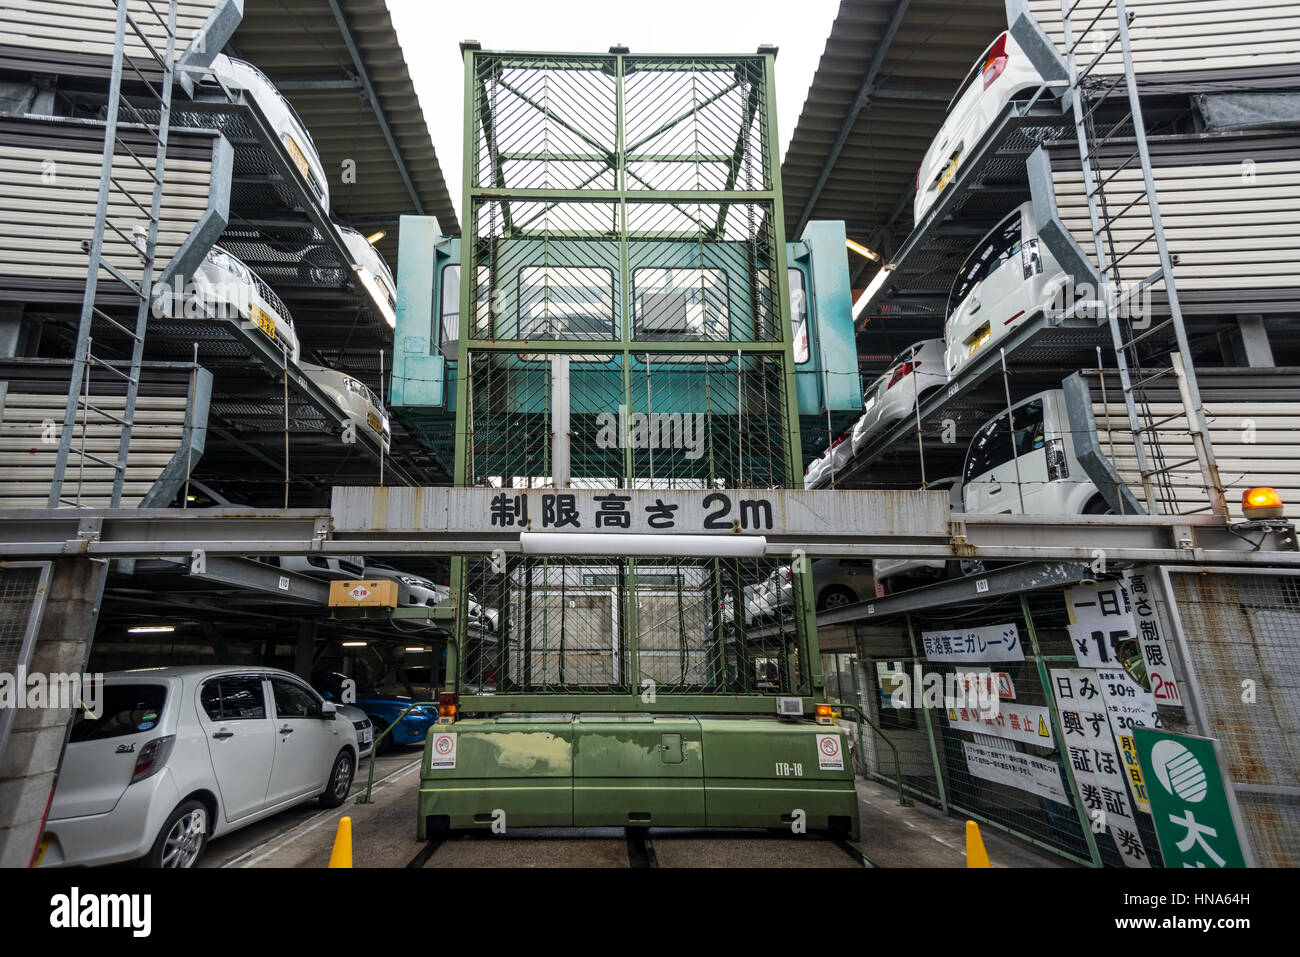 Space saving multistorey car park in the city of Kyoto, Japan - Stock Image